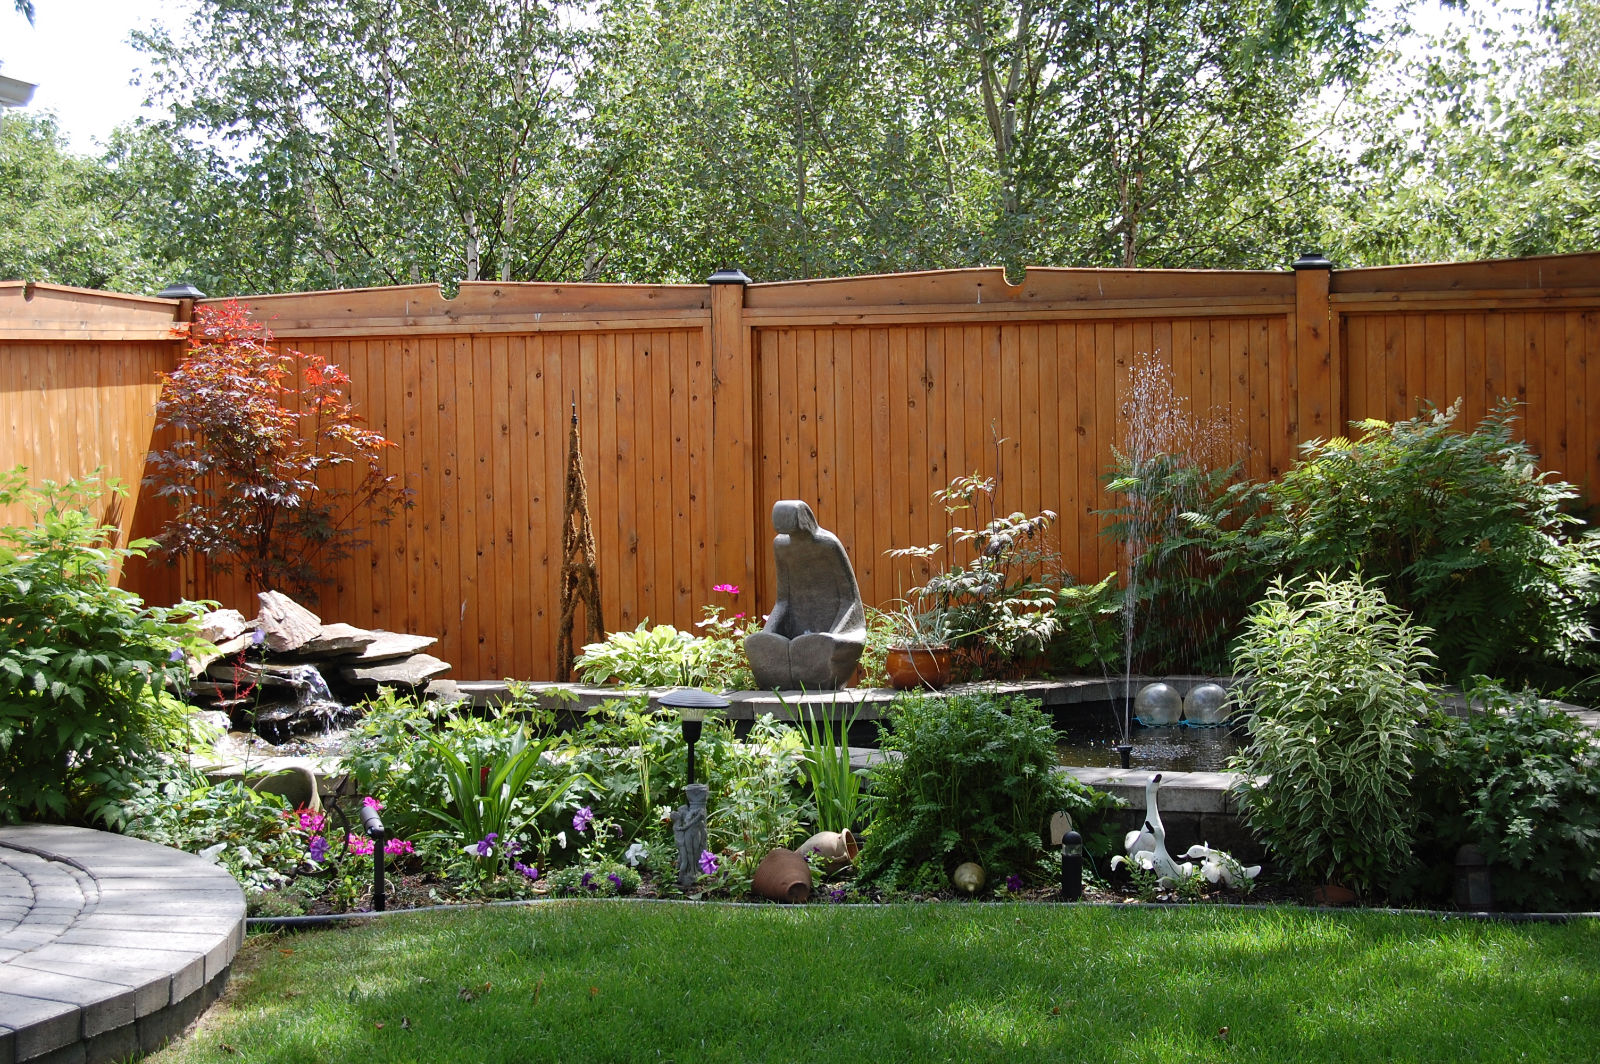 Backyard garden with professional landscaping service.